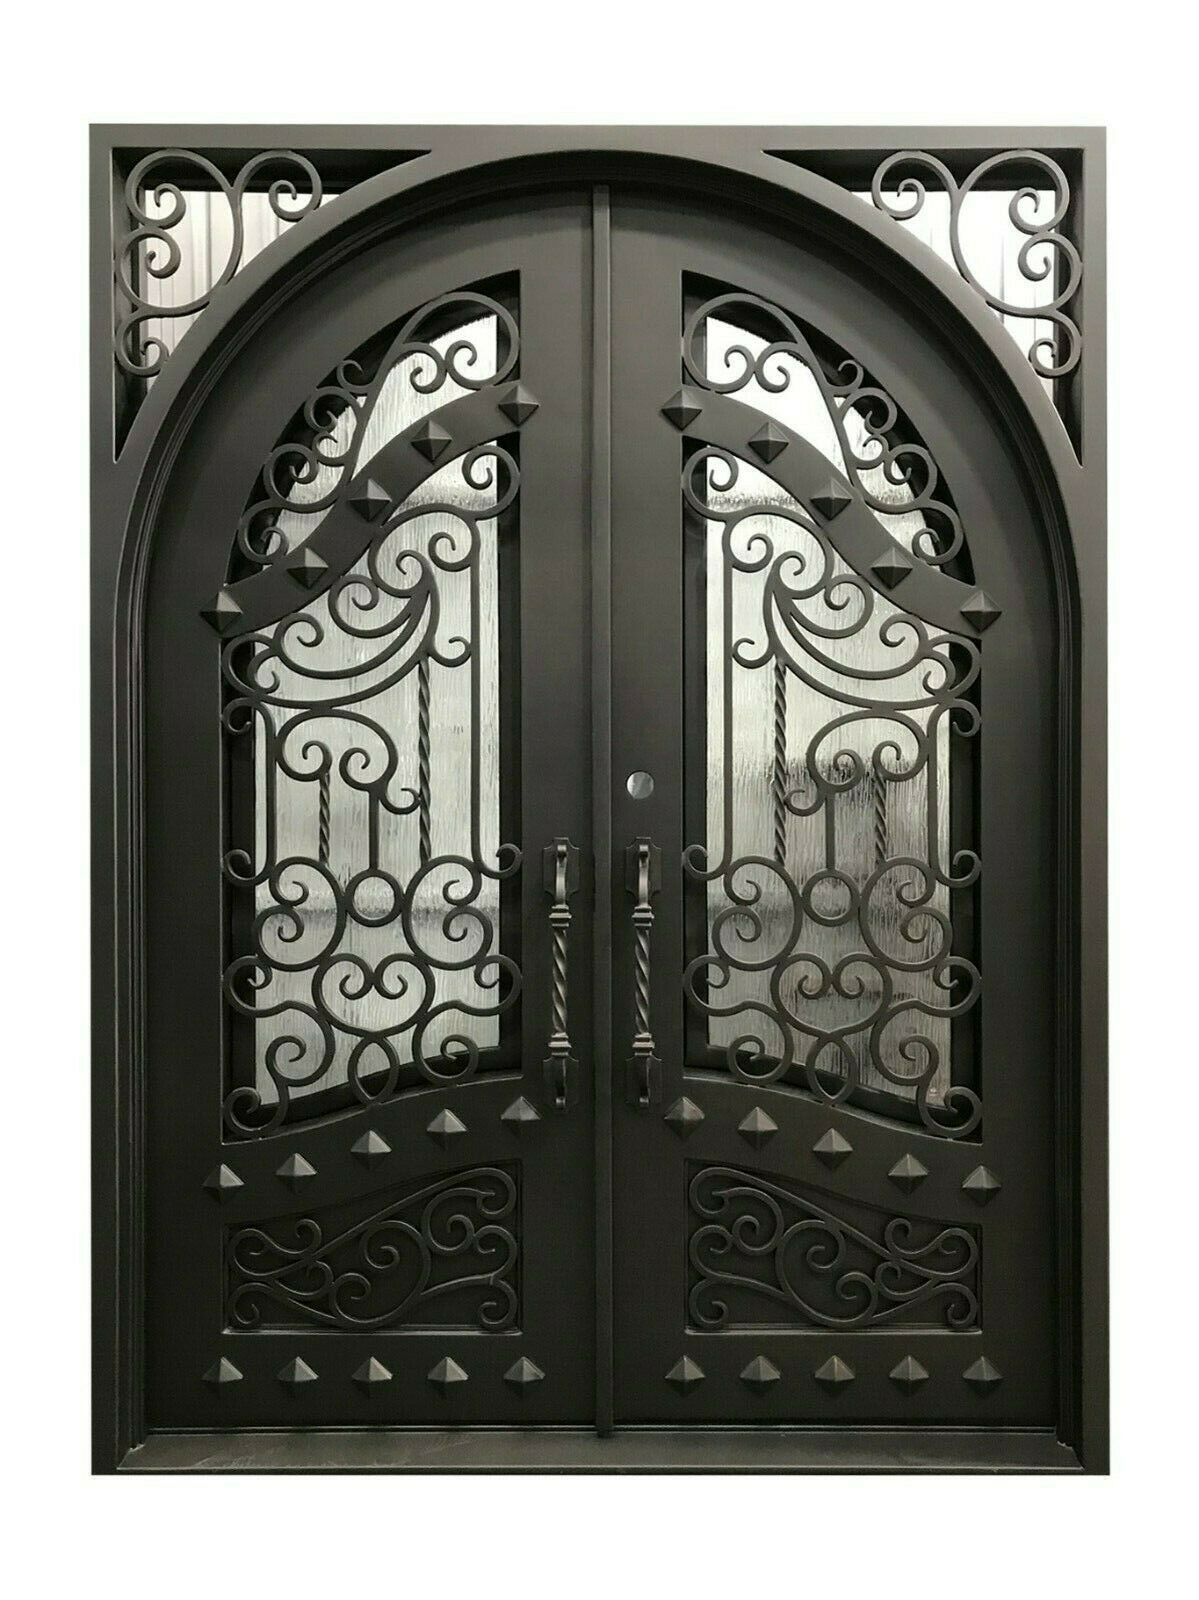 Iron Entry Door In 2020 Wrought Iron Doors Iron Doors Entry Doors